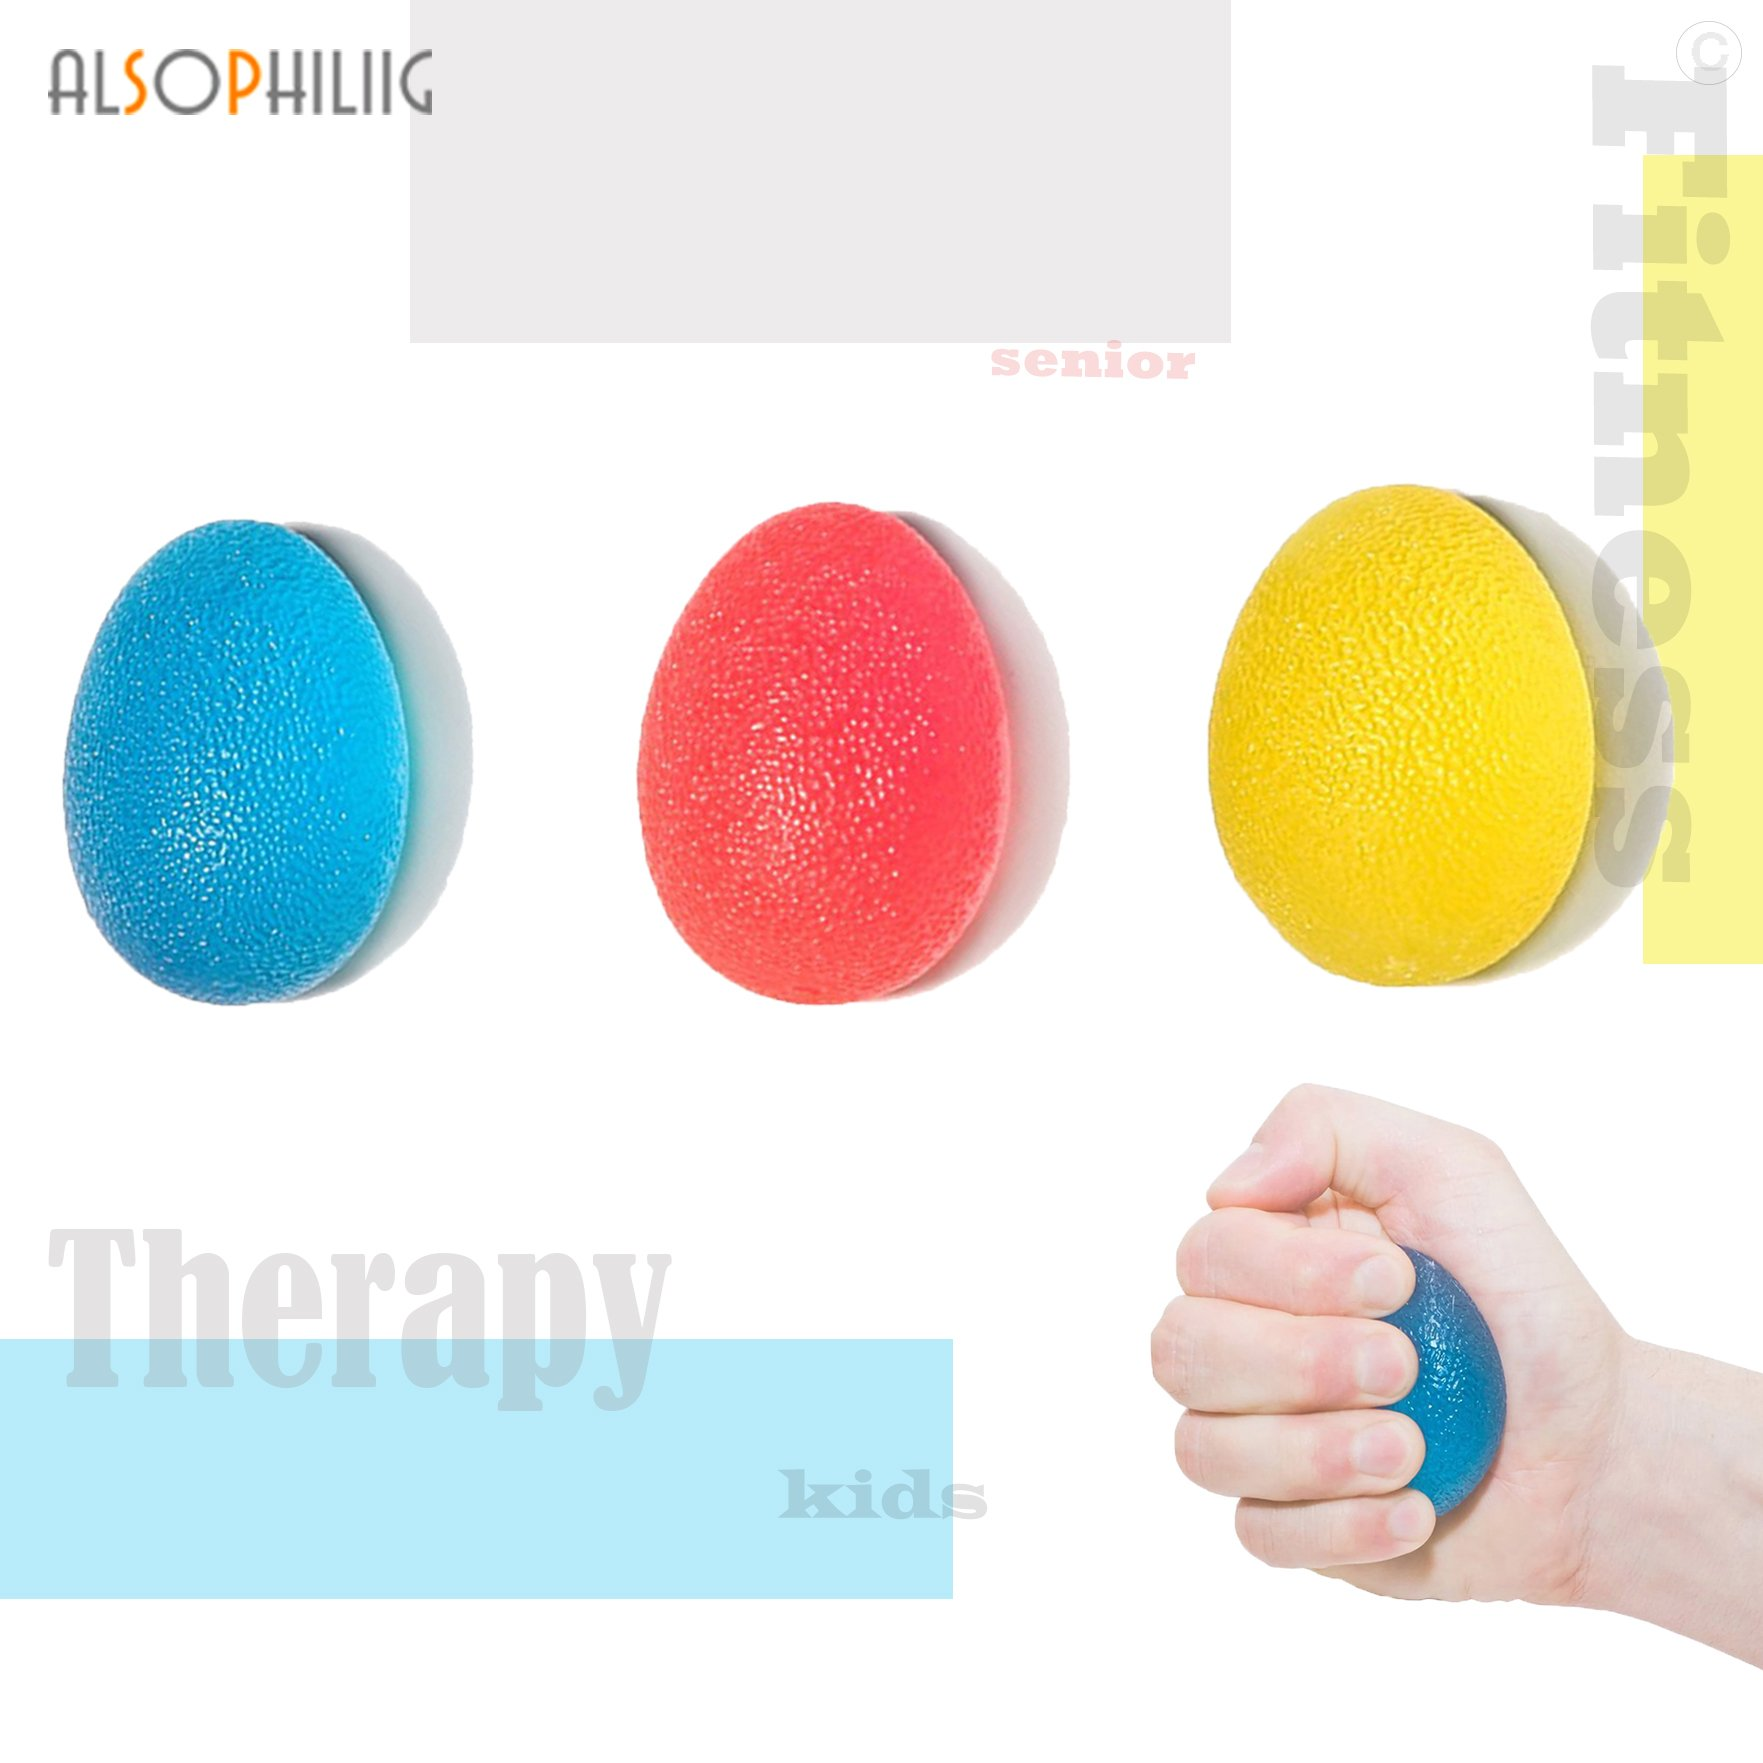 alsophiliig Stress Relief Hand Exercise Ball Kit Hand Grip Balls Squeeze Exerciser 3 Resistance for Hand Strength Stress and Pain Relief 3 Pack